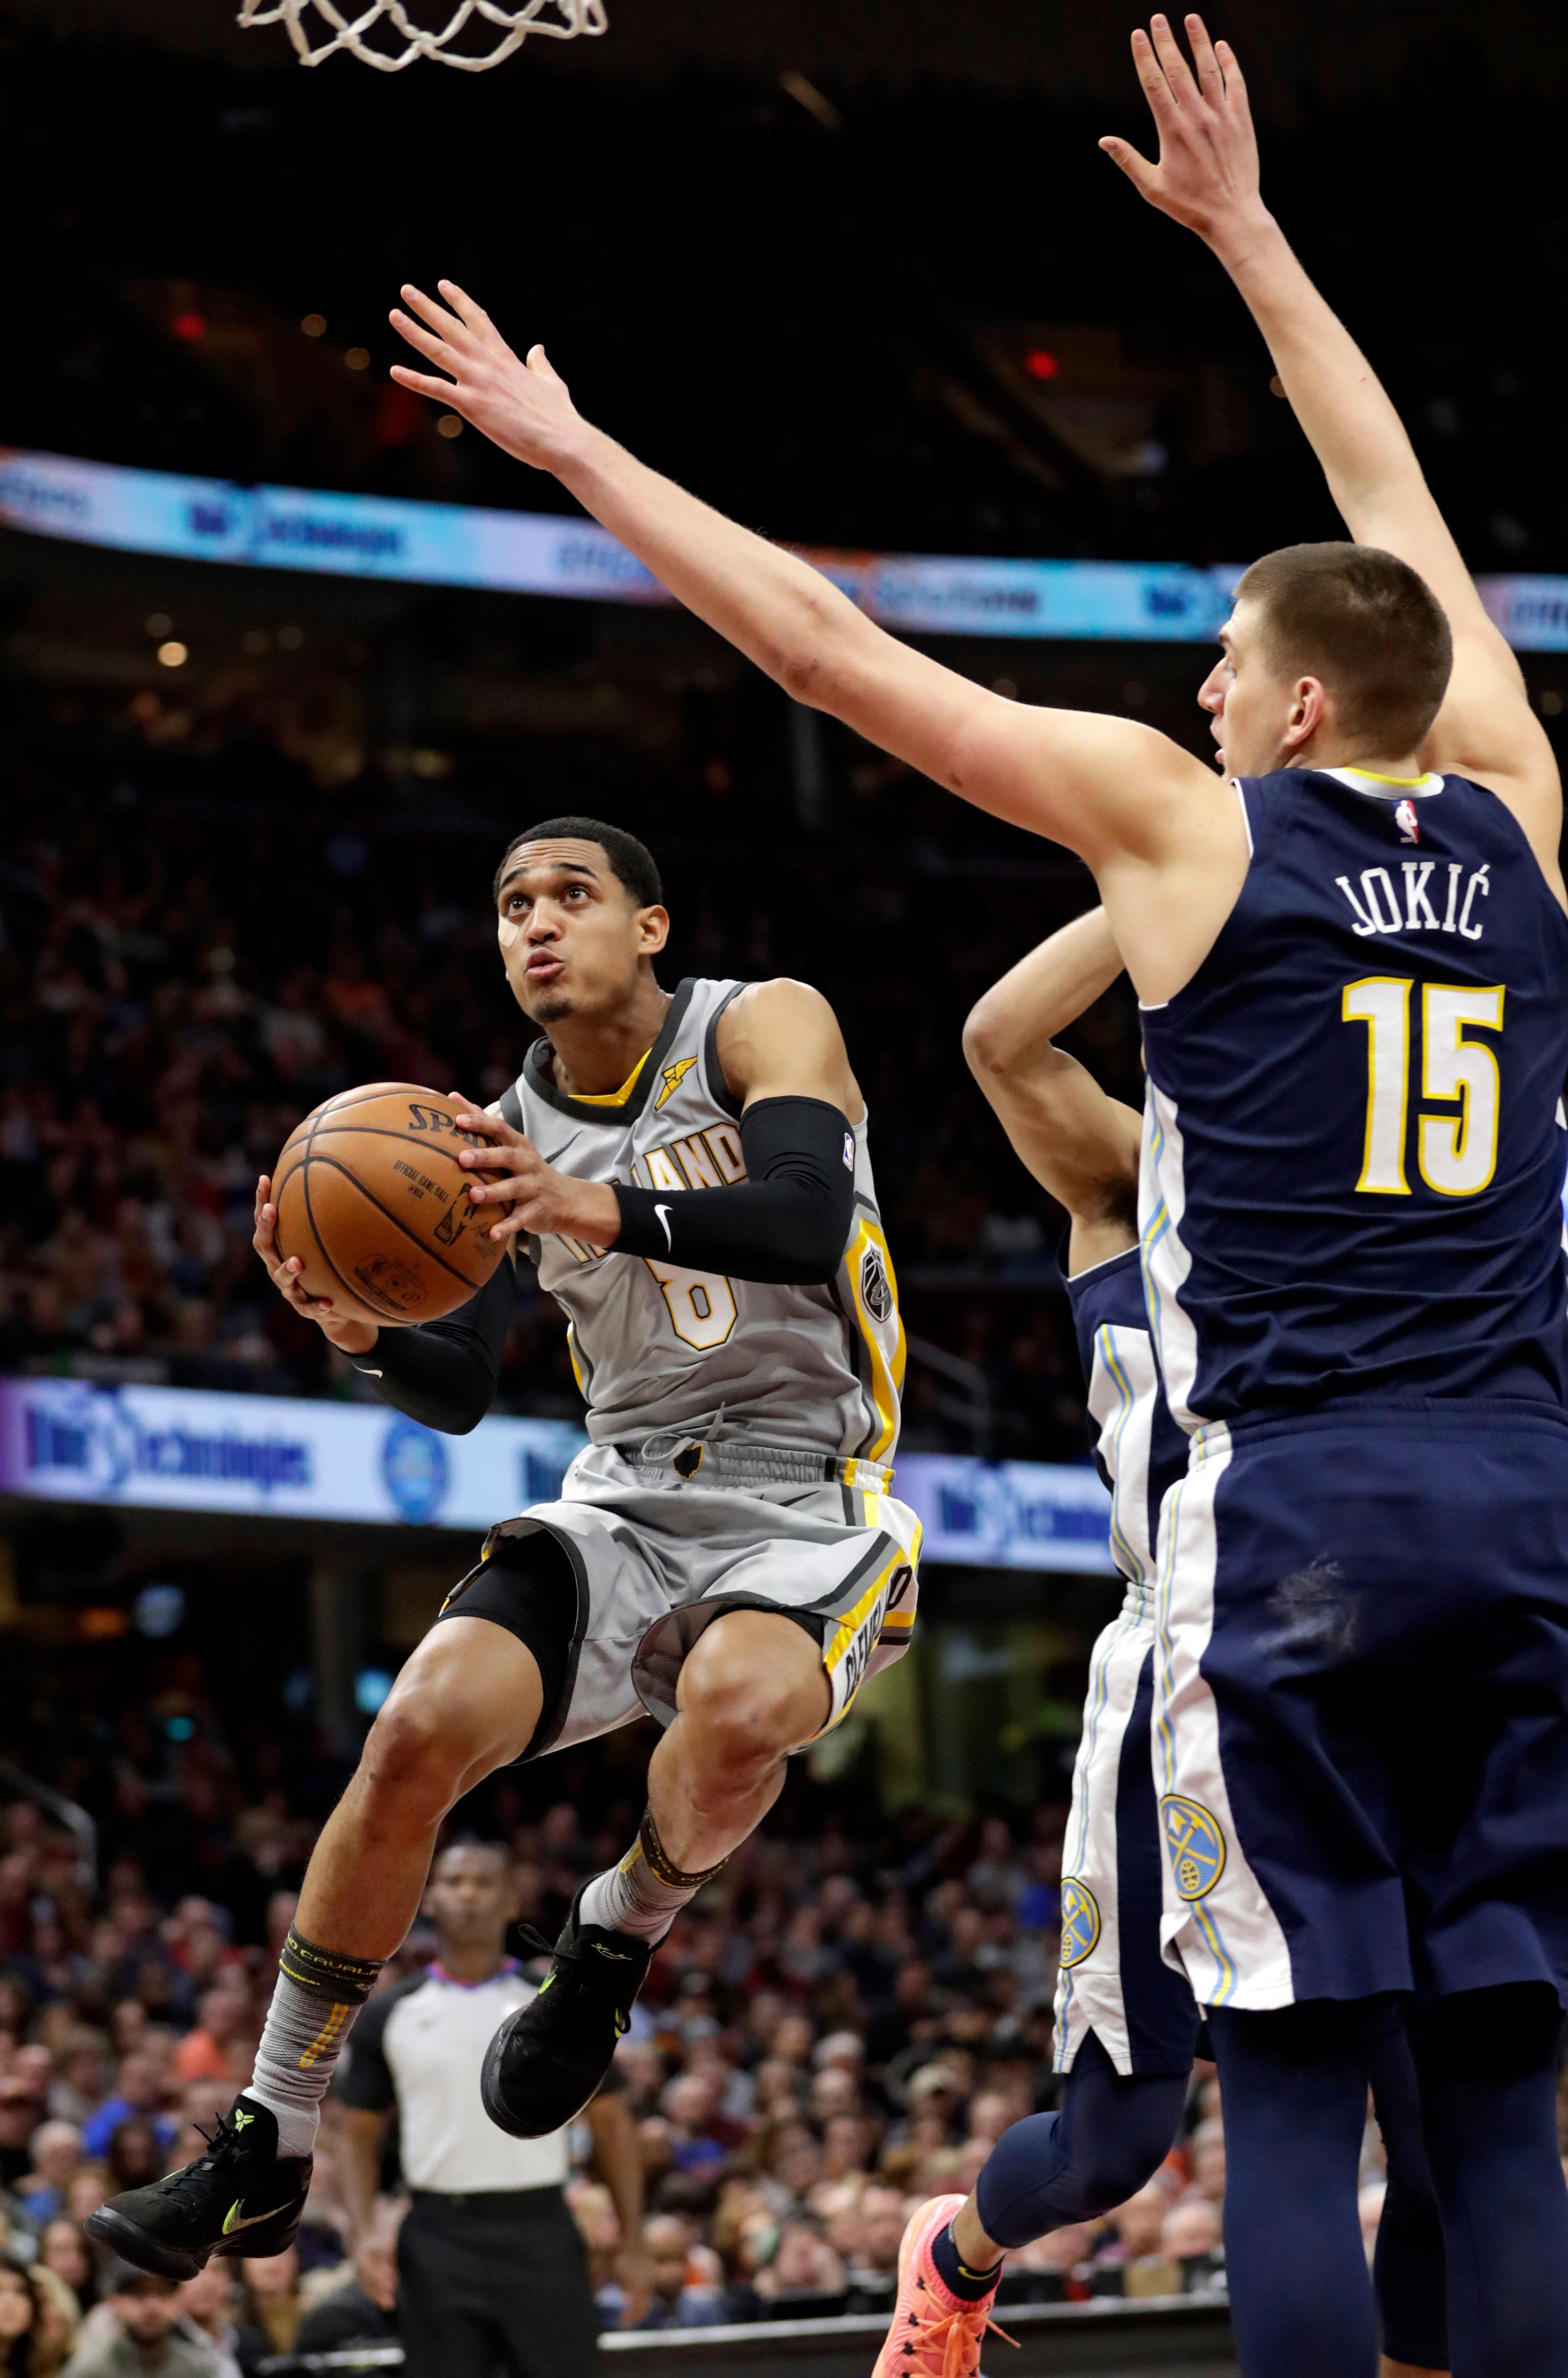 Cleveland Cavaliers' Jordan Clarkson (8) drives to the basket against Denver Nuggets' Nikola Jokic, from Serbia, in the first half of an NBA basketball game, Saturday, March 3, 2018, in Cleveland. (AP Photo/Tony Dejak)